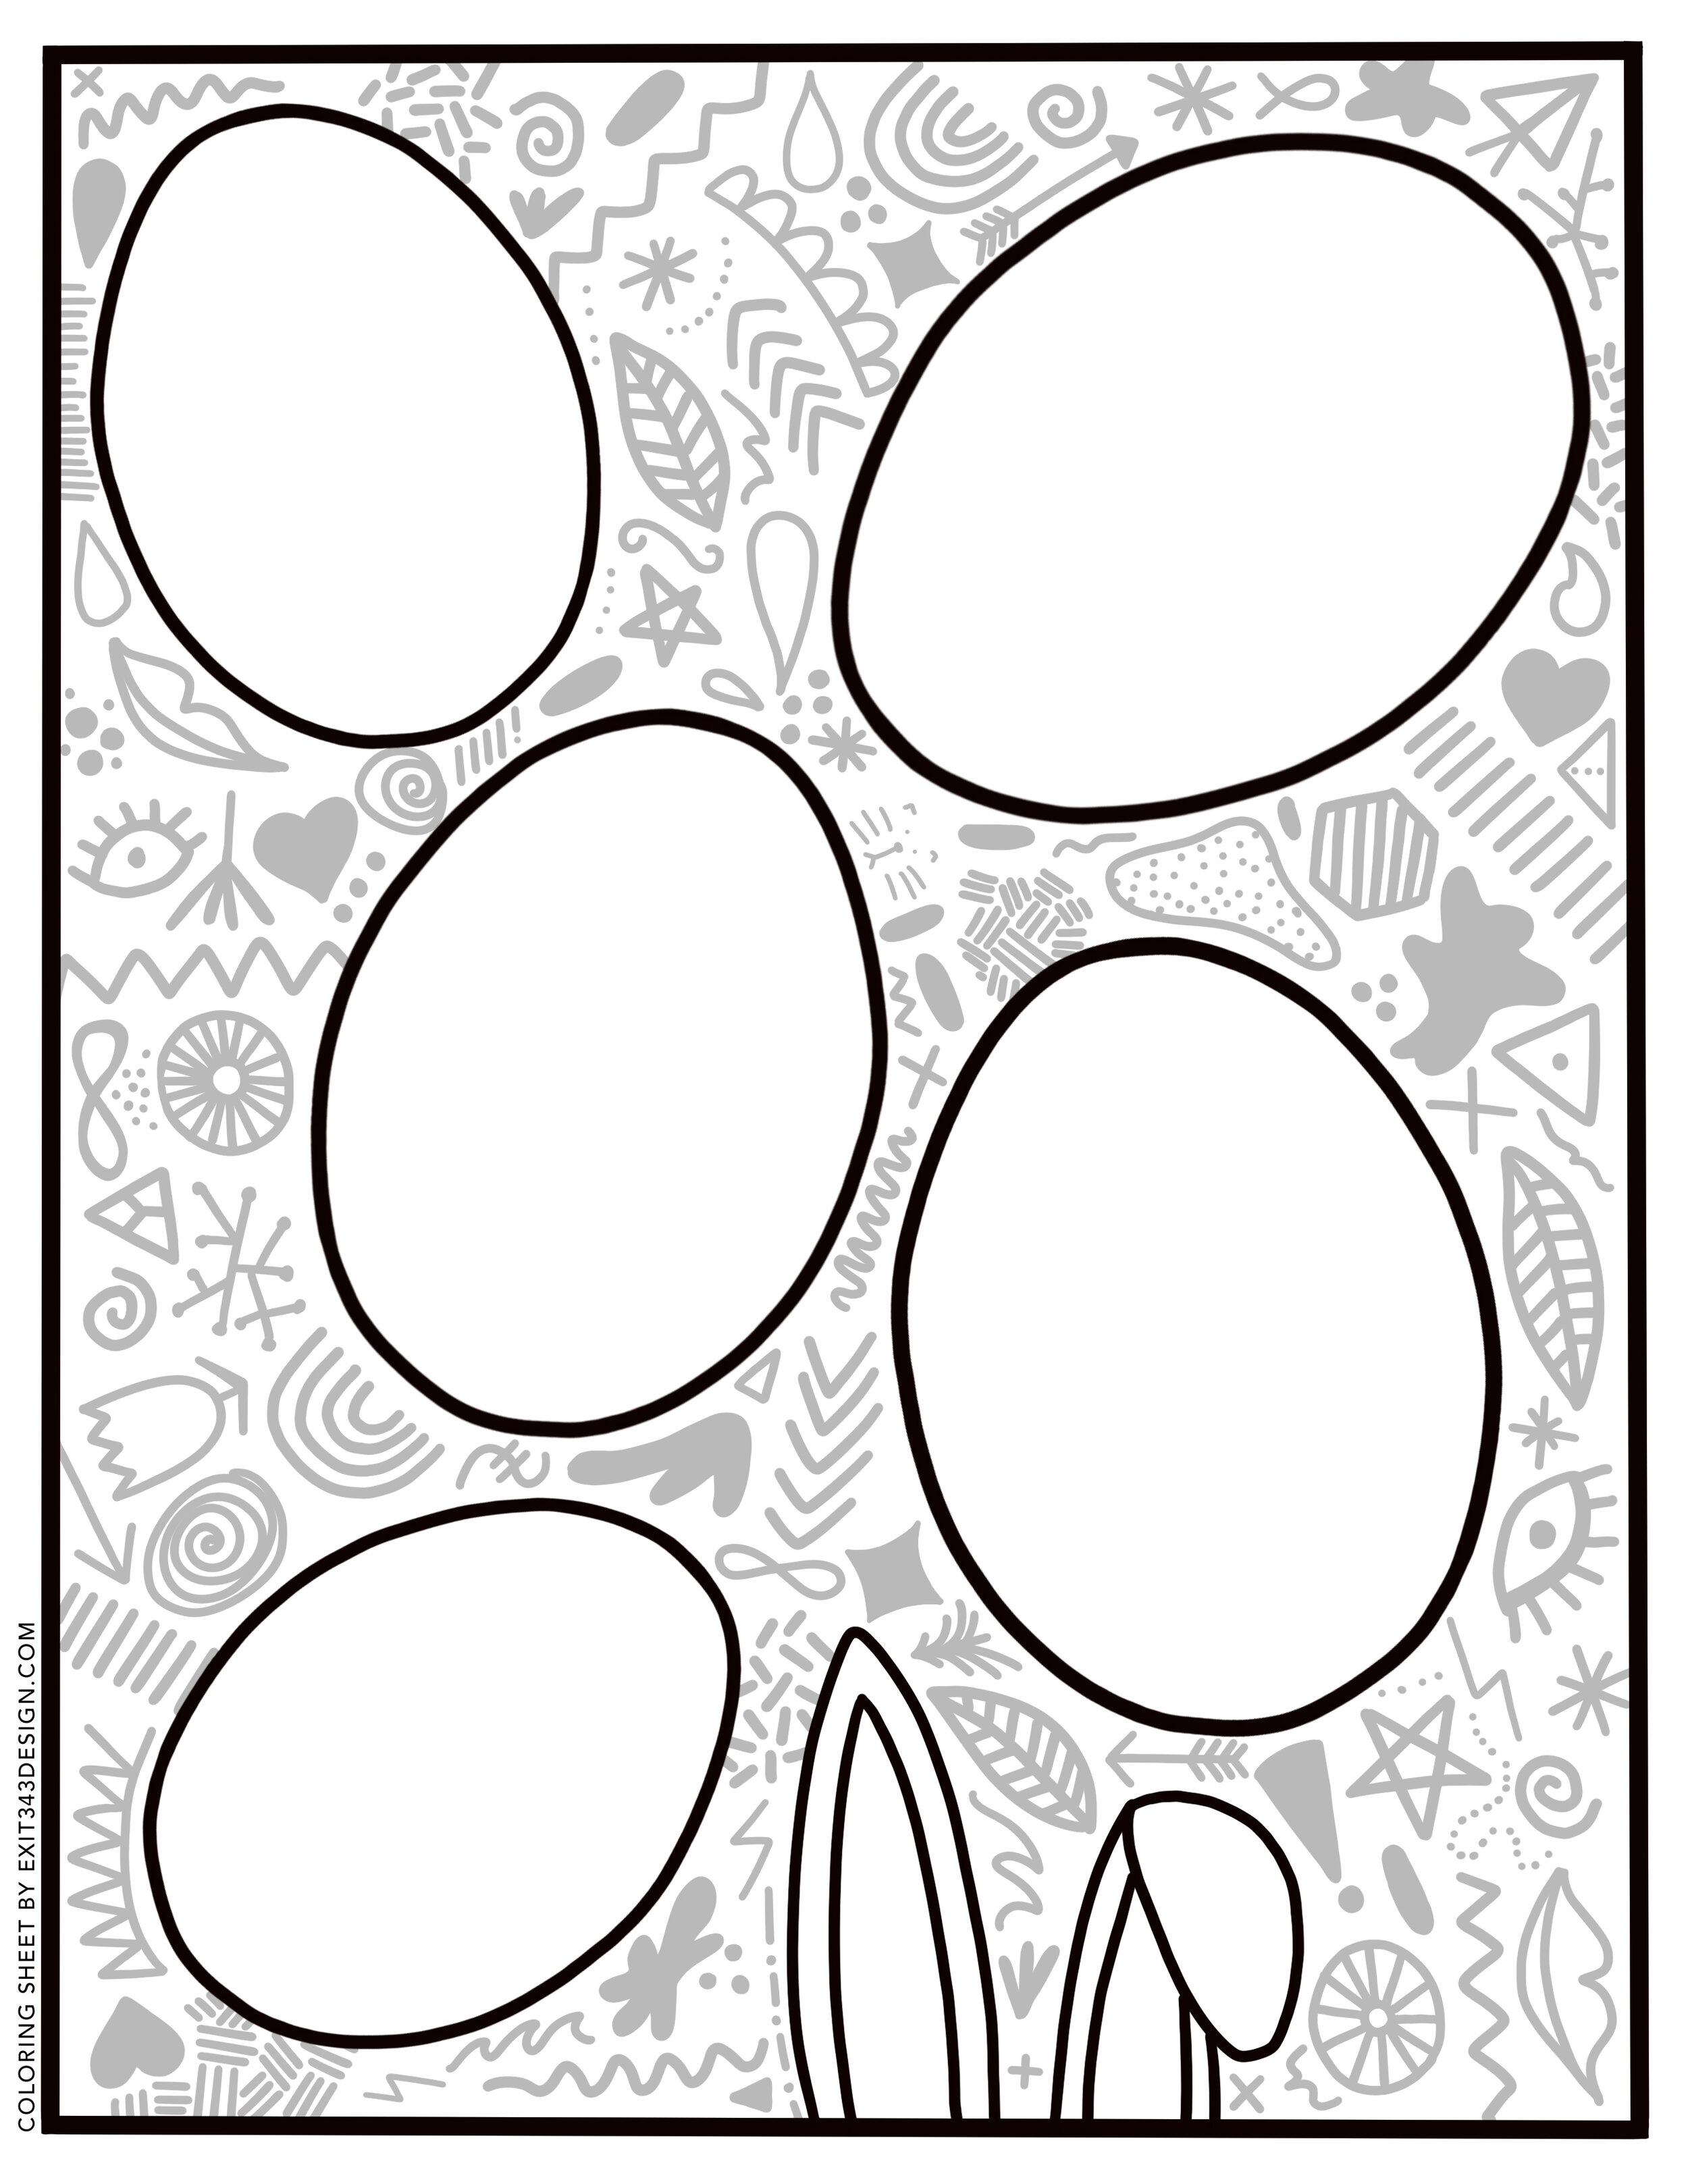 Friday Fun Free Easter Egg Color Page Download E X I T 3 4 3 D E S I G N